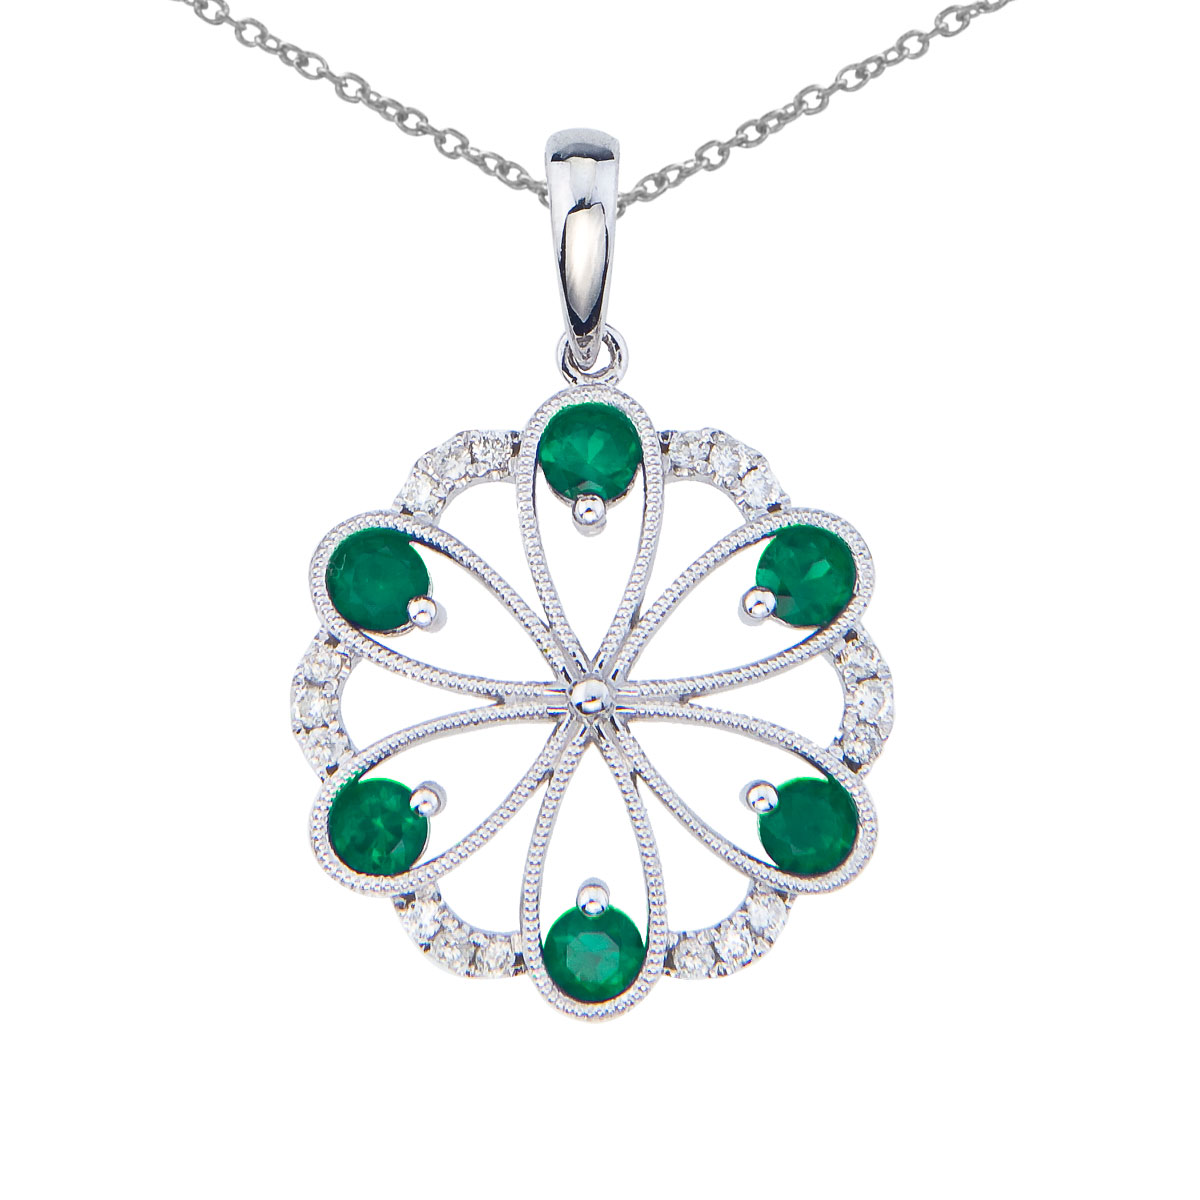 Beautiful floral pendant set in 14k white gold with 6 dazzling emeralds and .14 total carats of b...